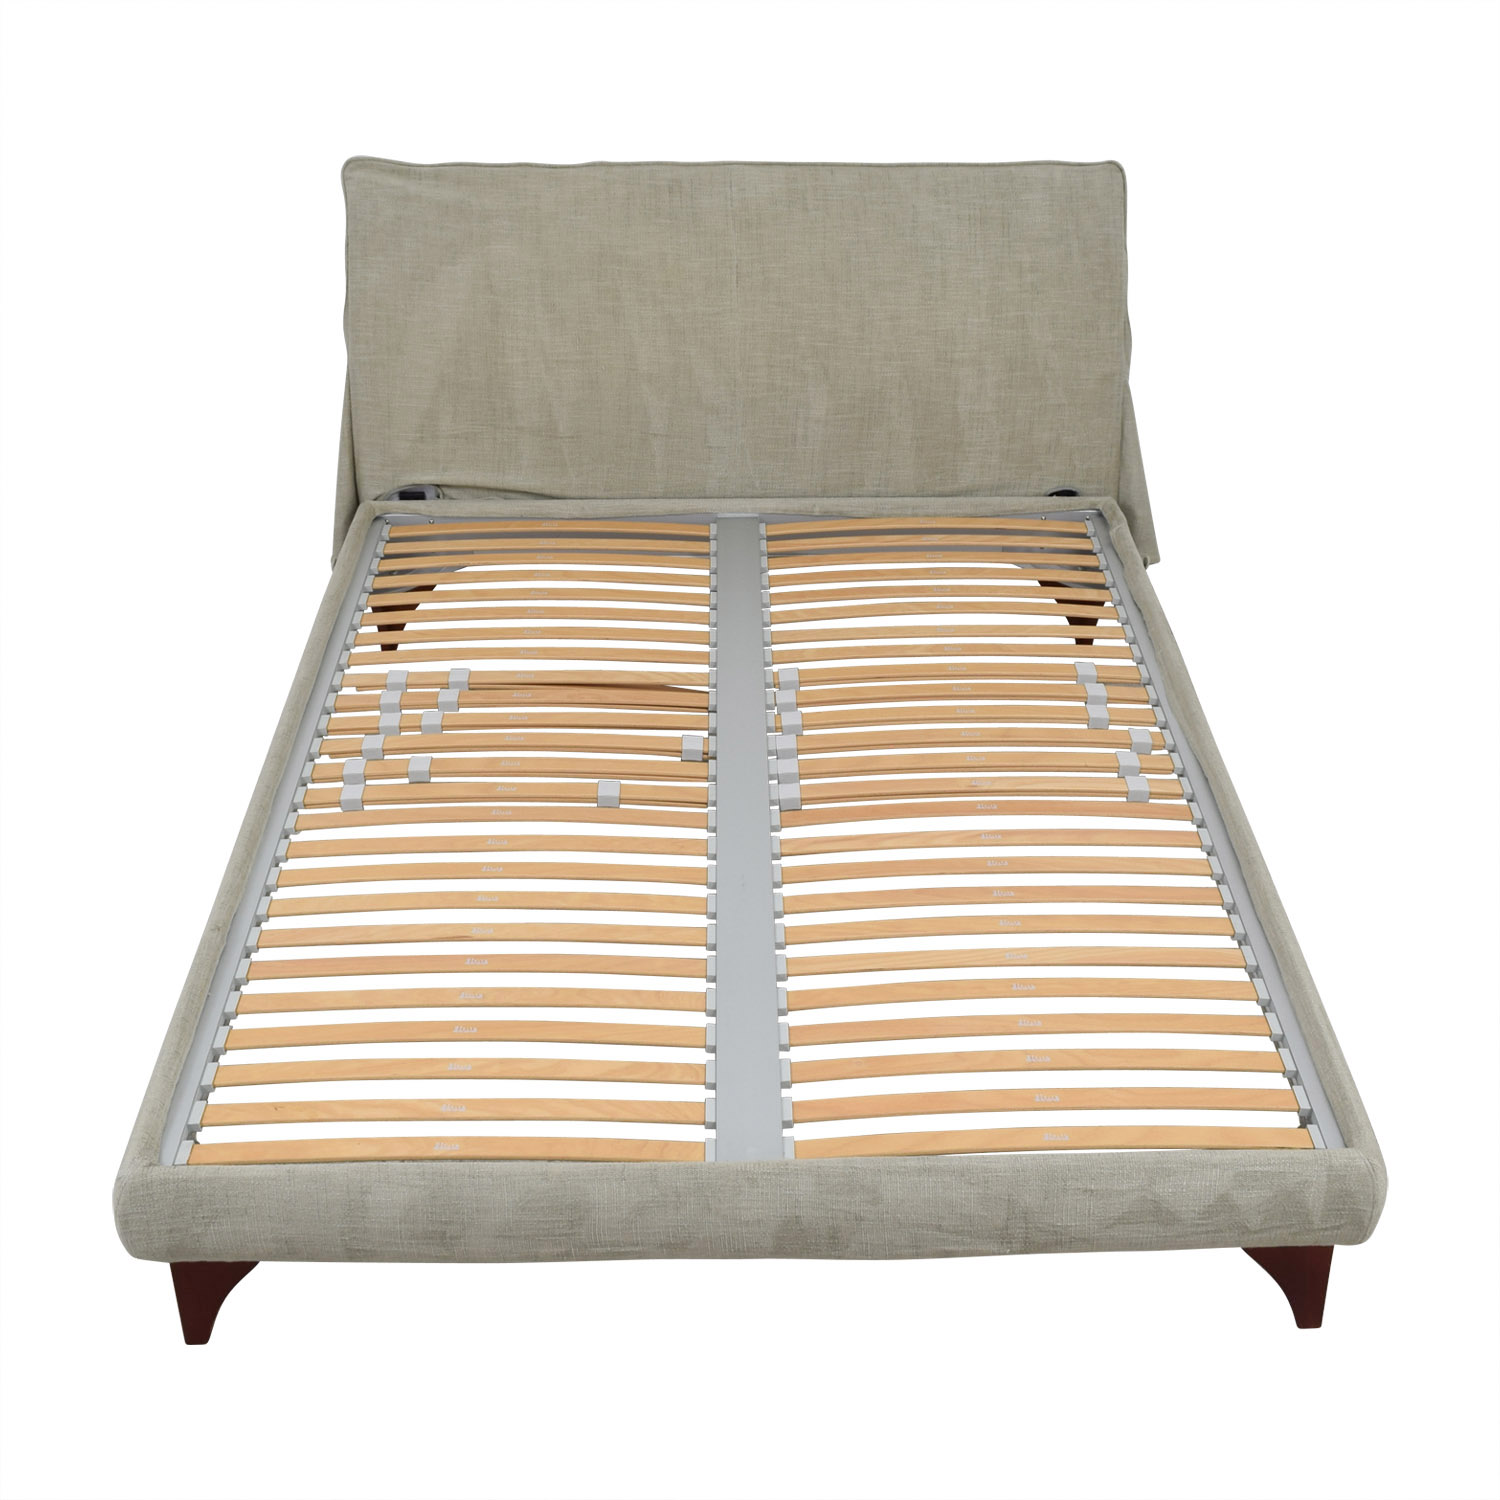 Flou Flou Beige Queen Platform Bed Frame for sale